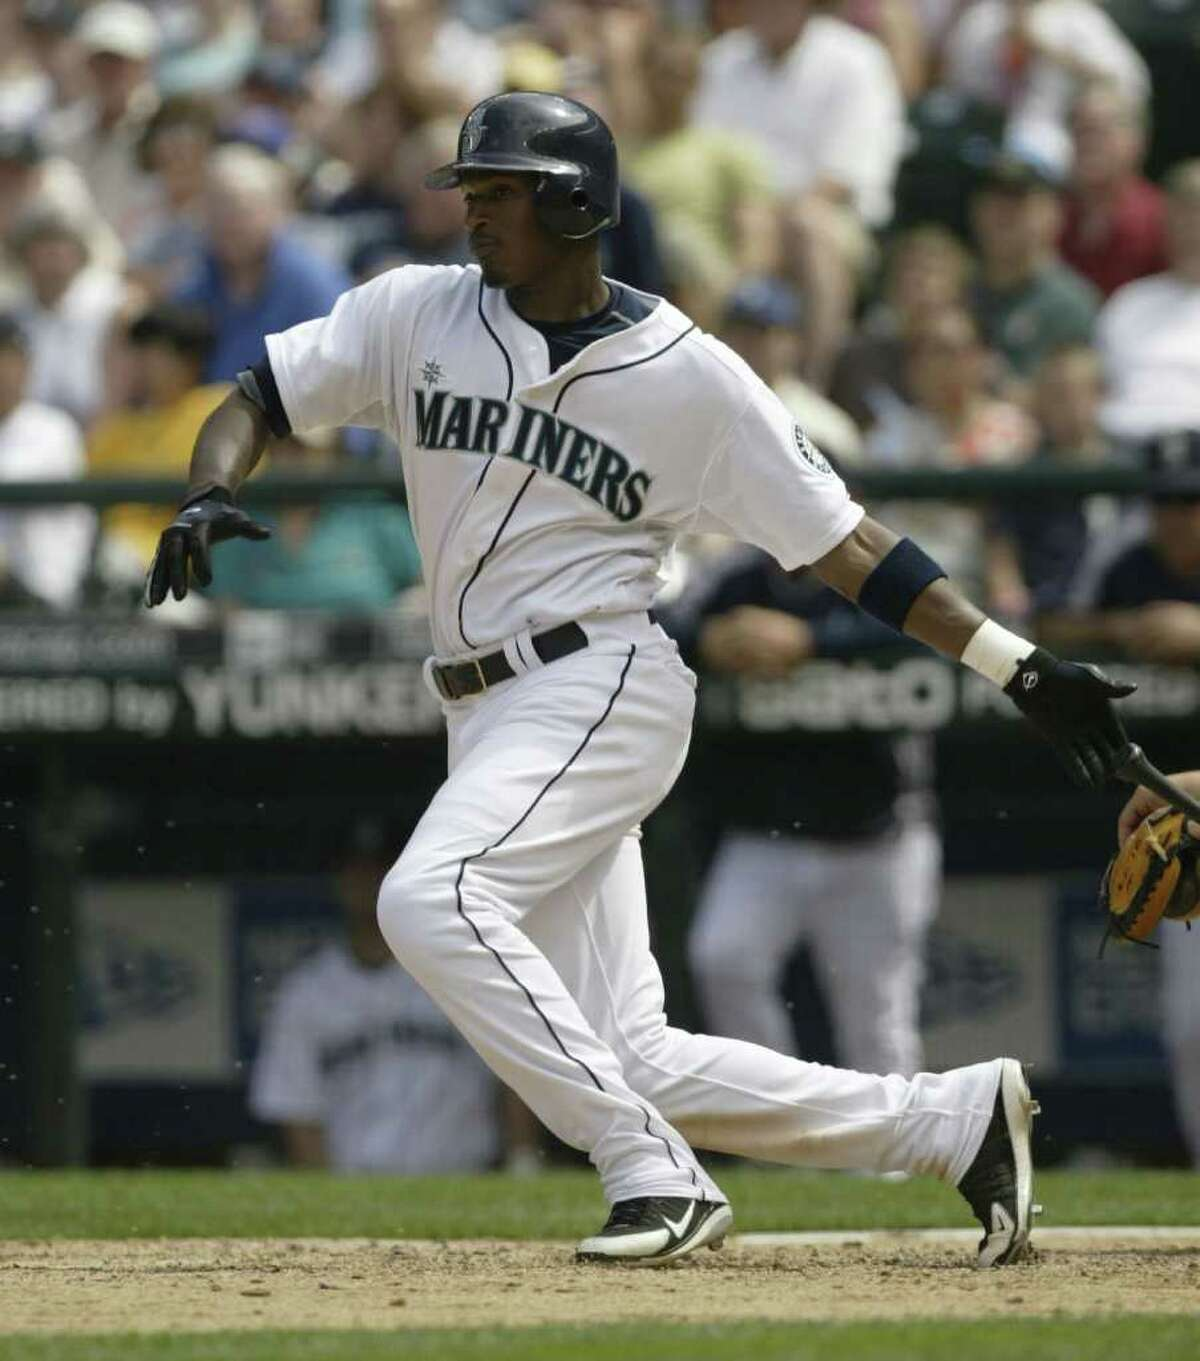 Adam Jones: Considered the Mariners top prospect in the mid-2000s, Jones, who had already dabbled in the bigs, was shipped to Baltimore with George Sherrill for Erik Bedard. Jones has been thriving in center field for the Orioles. He made the All-Star team in 2009, and is batting .289 with 18 home runs this season.